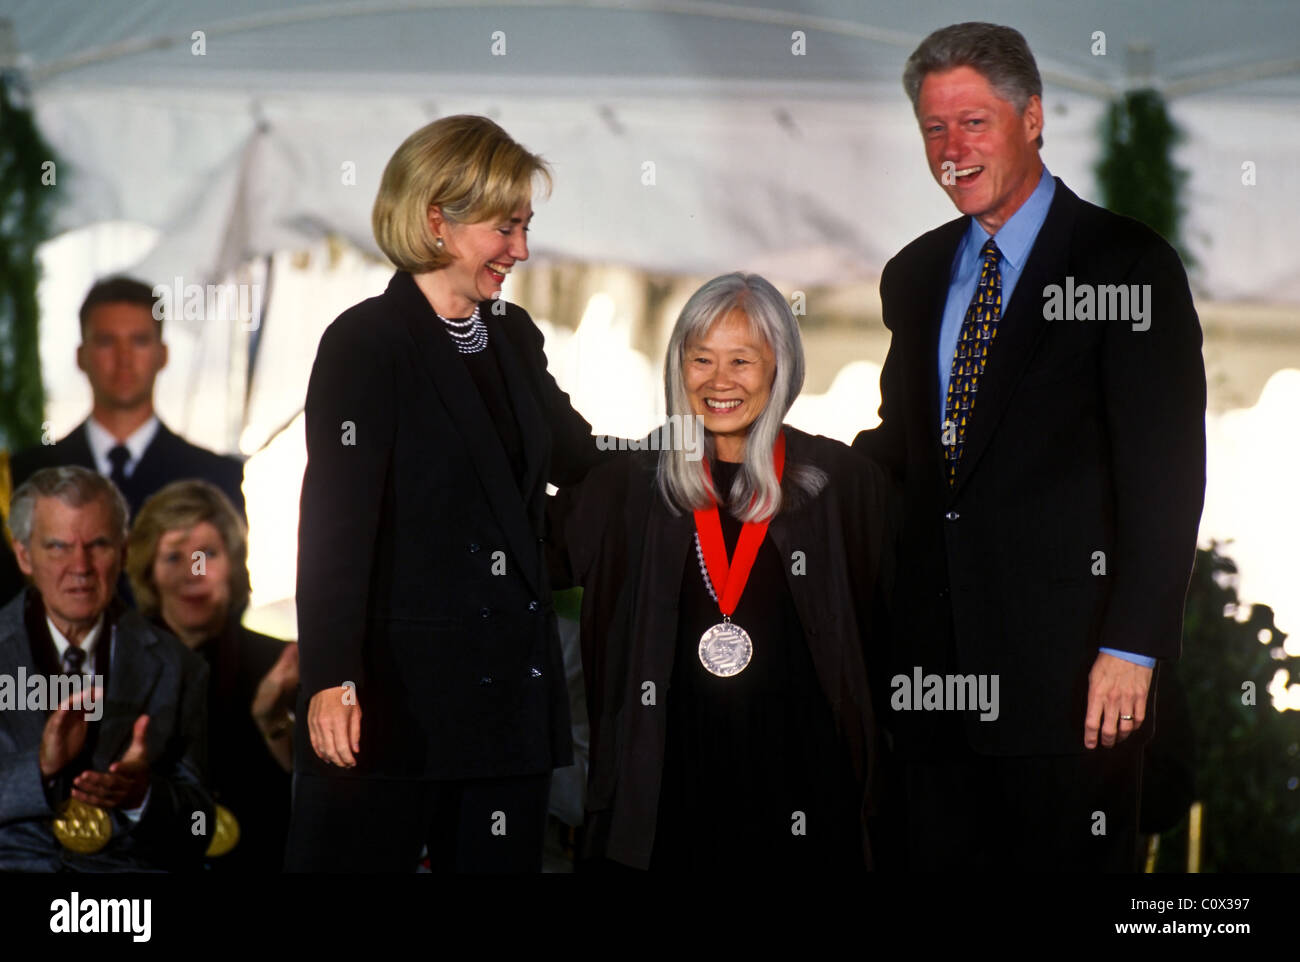 President Bill Clinton and First Lady Hillary Clinton honoring Mazine Hong Kingston at the Arts and Humanity Awards Stock Photo